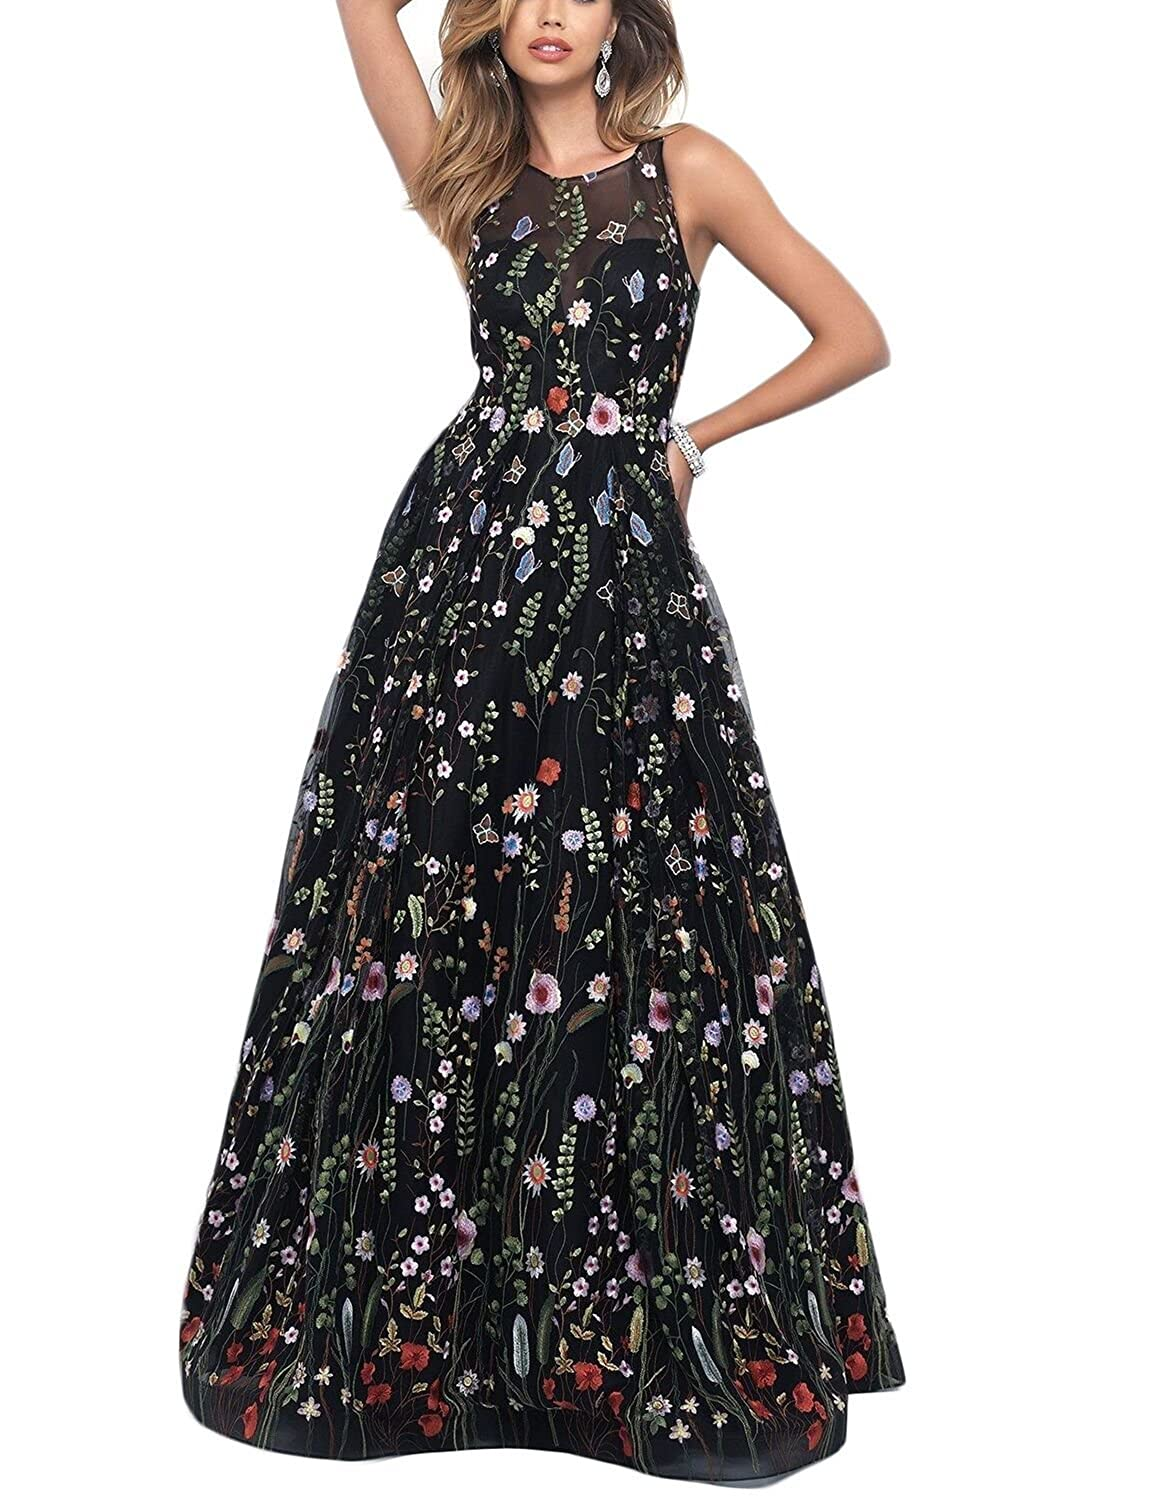 1c98a5955b83 Amazon.com  YSMei Womens Long 3D Flower Prom Party Dress Backless Formal  Evening Gown YPM458  Clothing